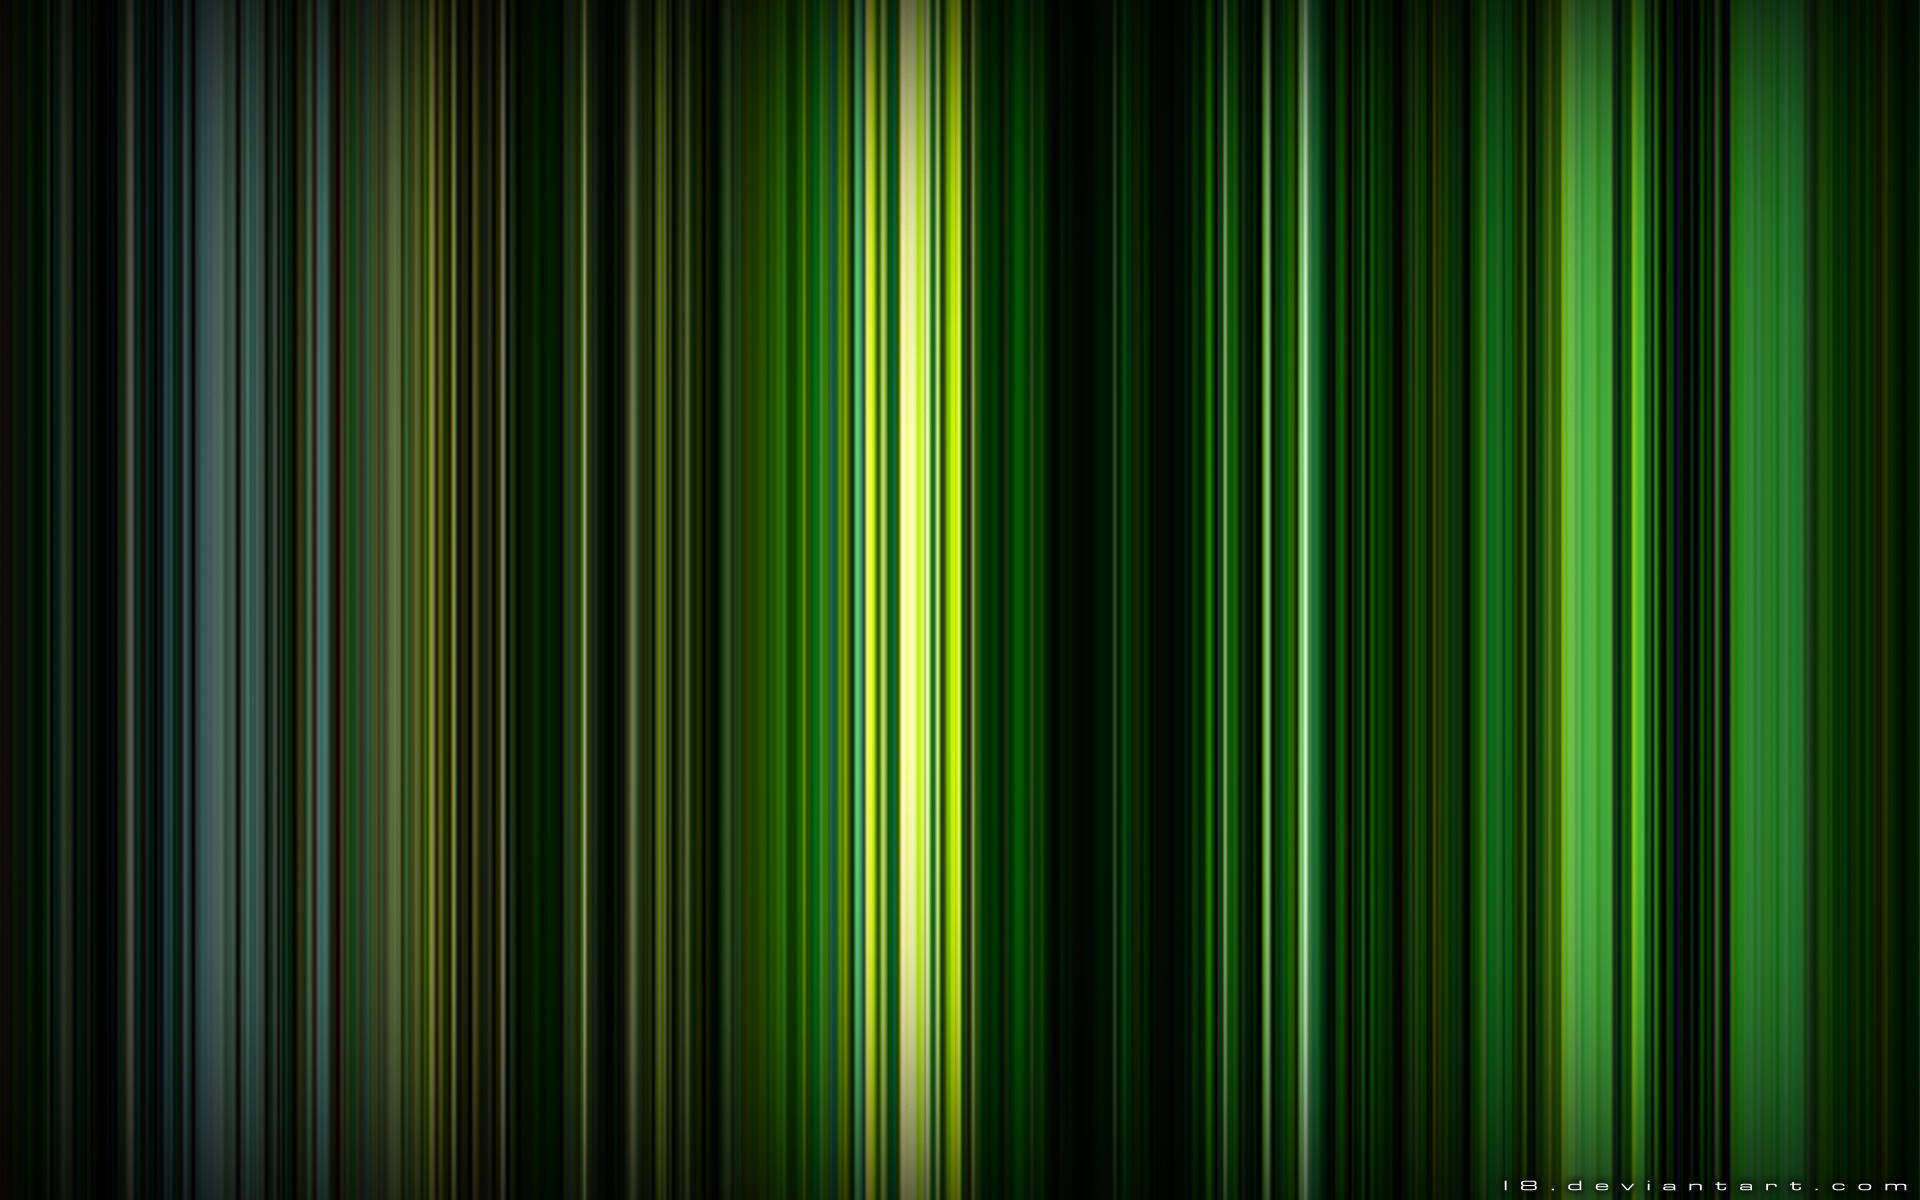 Fondos De Pantalla Wallpapers Gratis Barras Verdes Hd